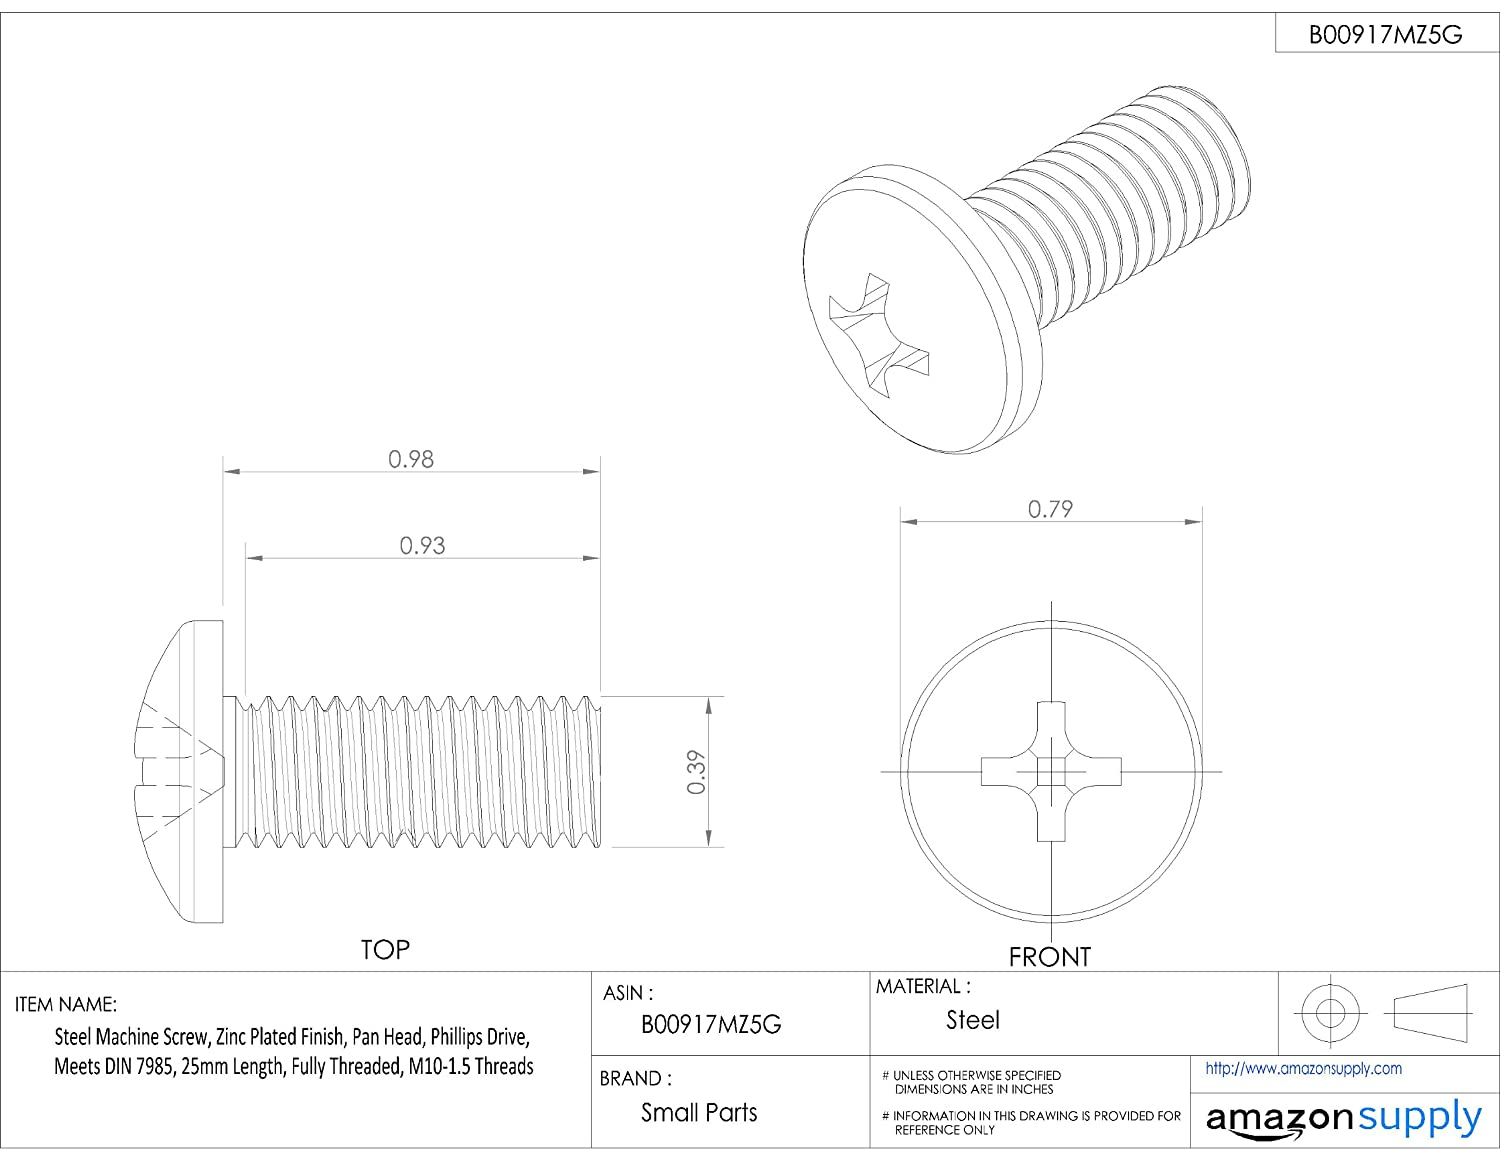 25mm Length Phillips Drive Fully Threaded Meets DIN 7985 Zinc Plated Finish Steel Machine Screw Pan Head M10-1.5 Metric Coarse Threads